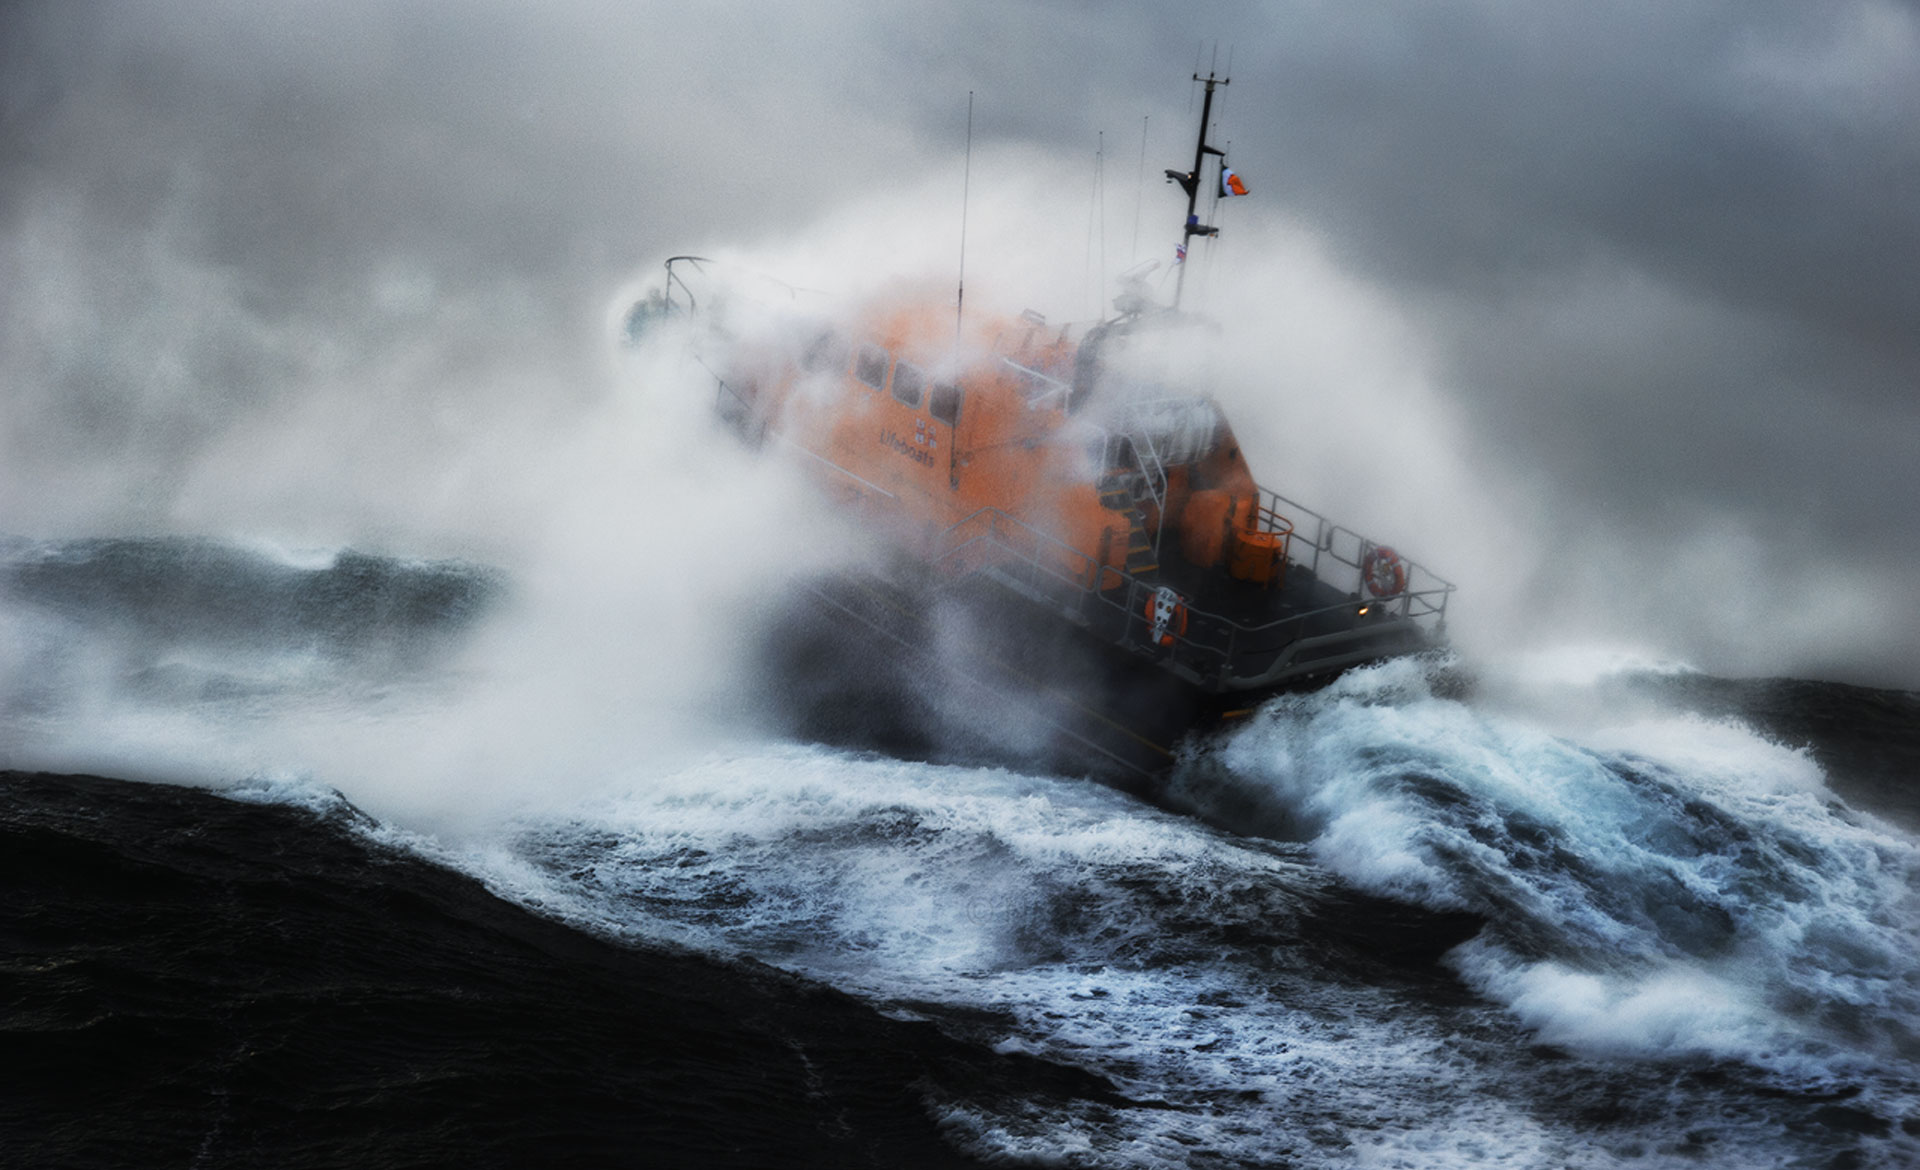 lifeboat-finisterre-goodfromyou-23.jpg